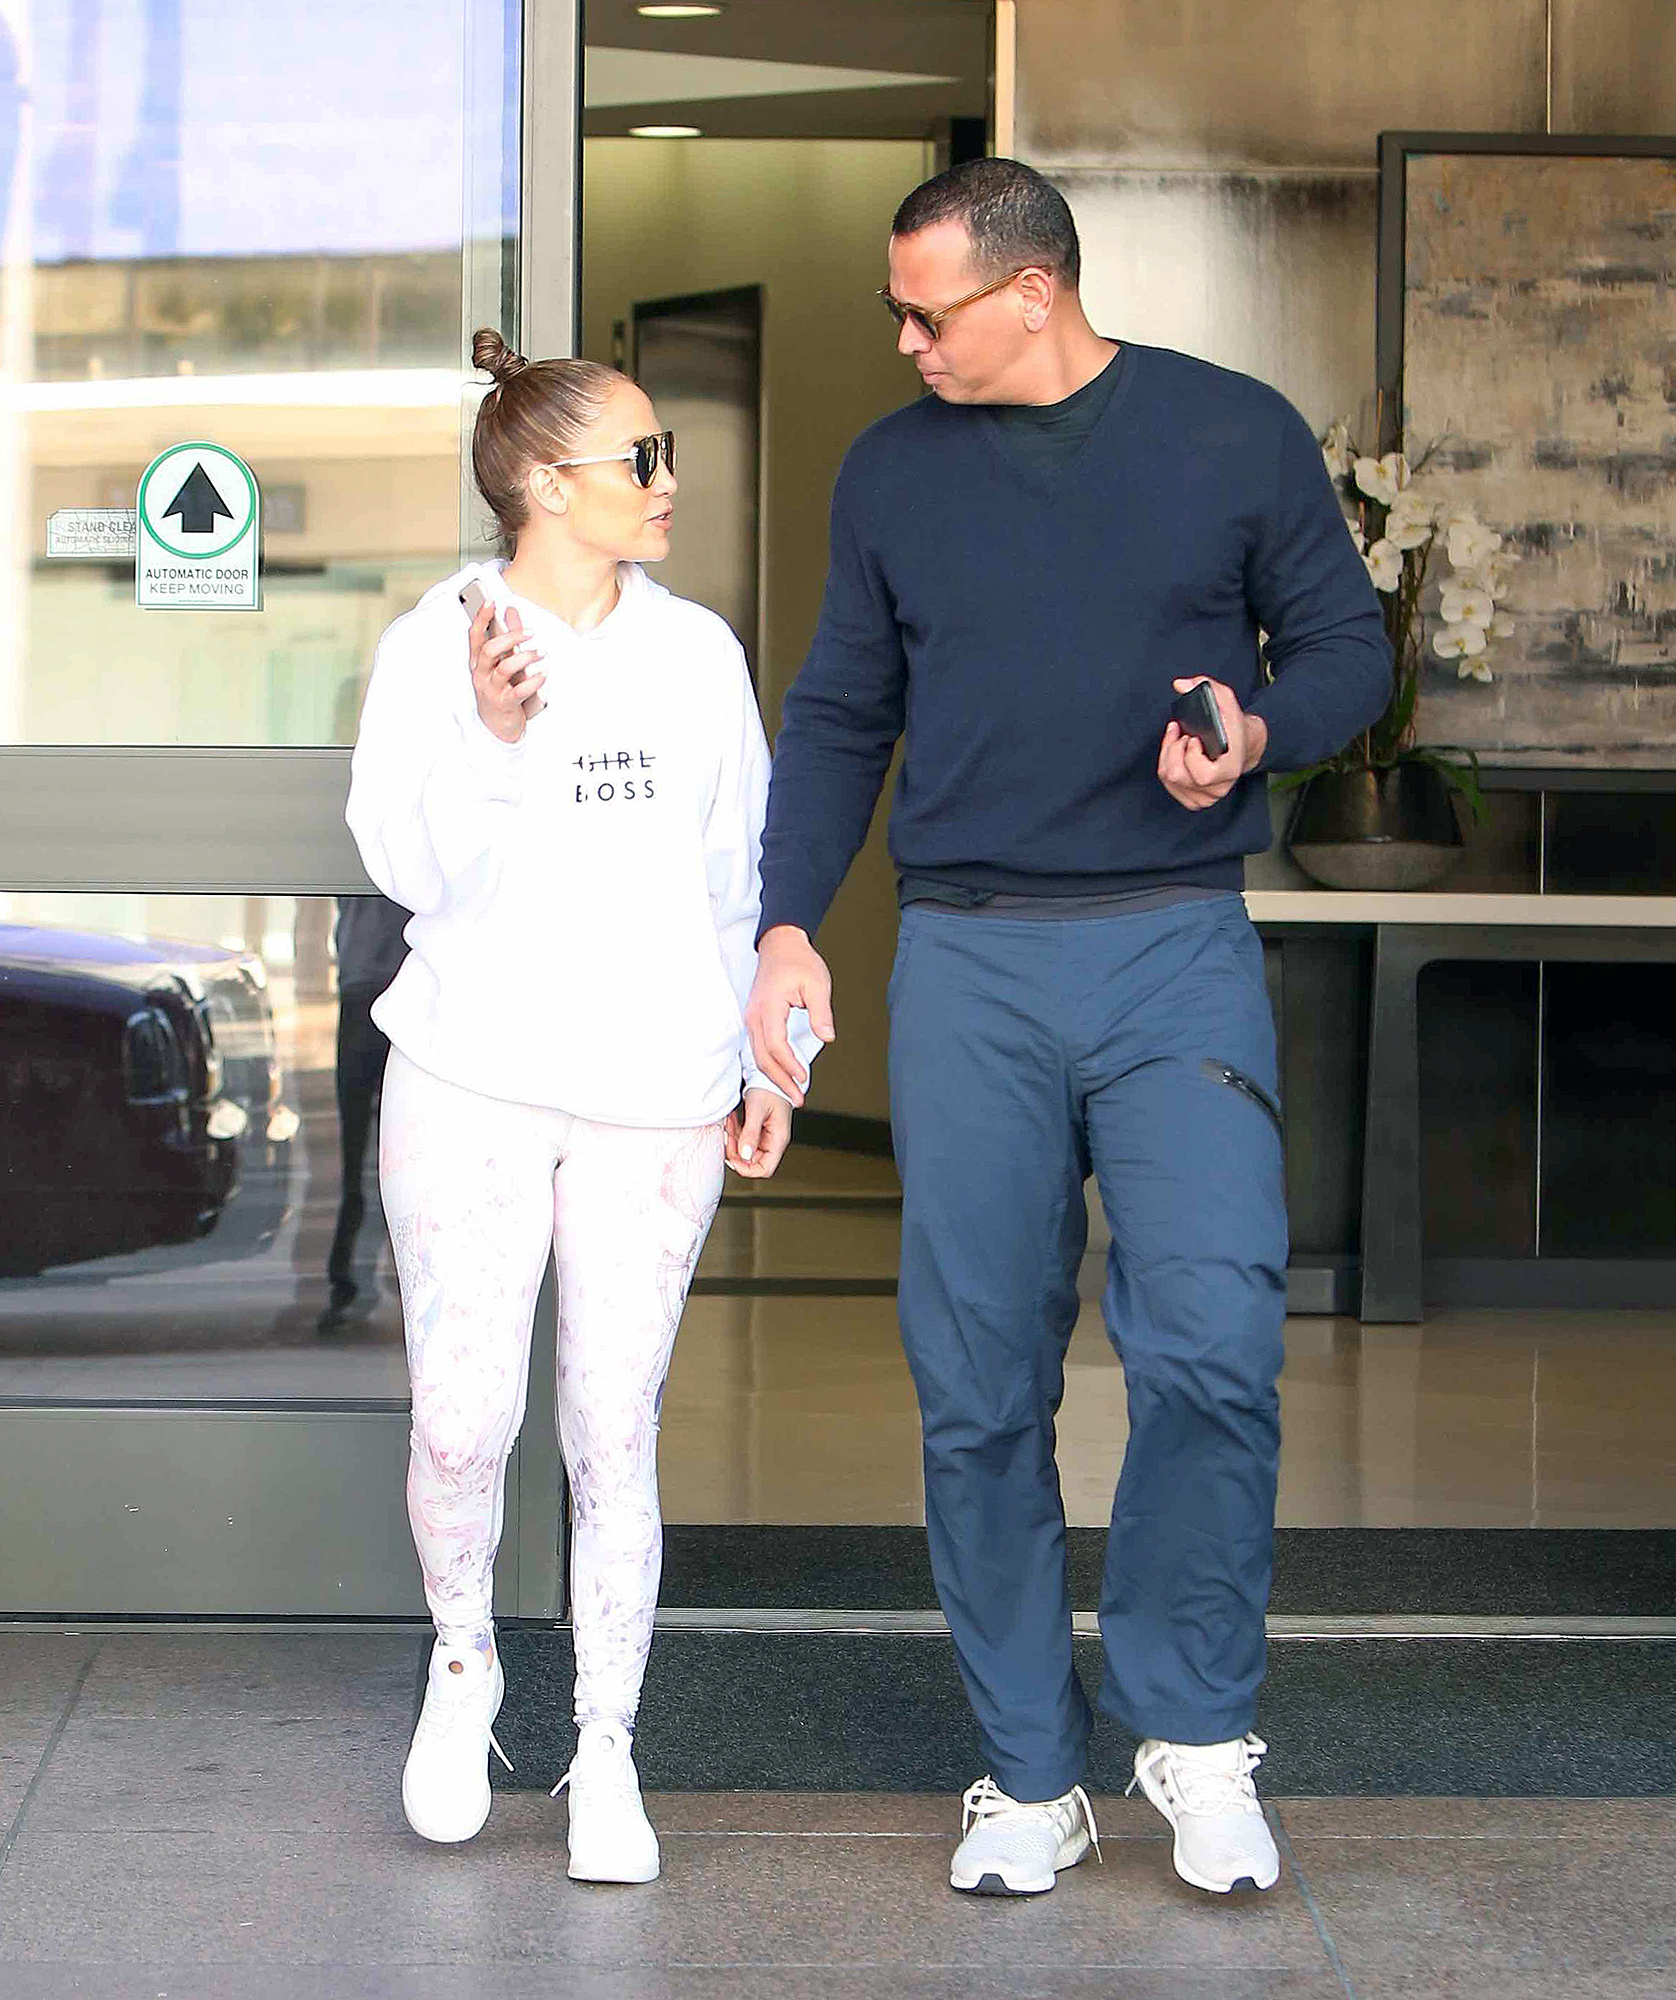 Happy Couple Jennifer Lopez And Alex Rodriguez make a quick stop at a medical building before making their way to the GYM in Los Angeles.